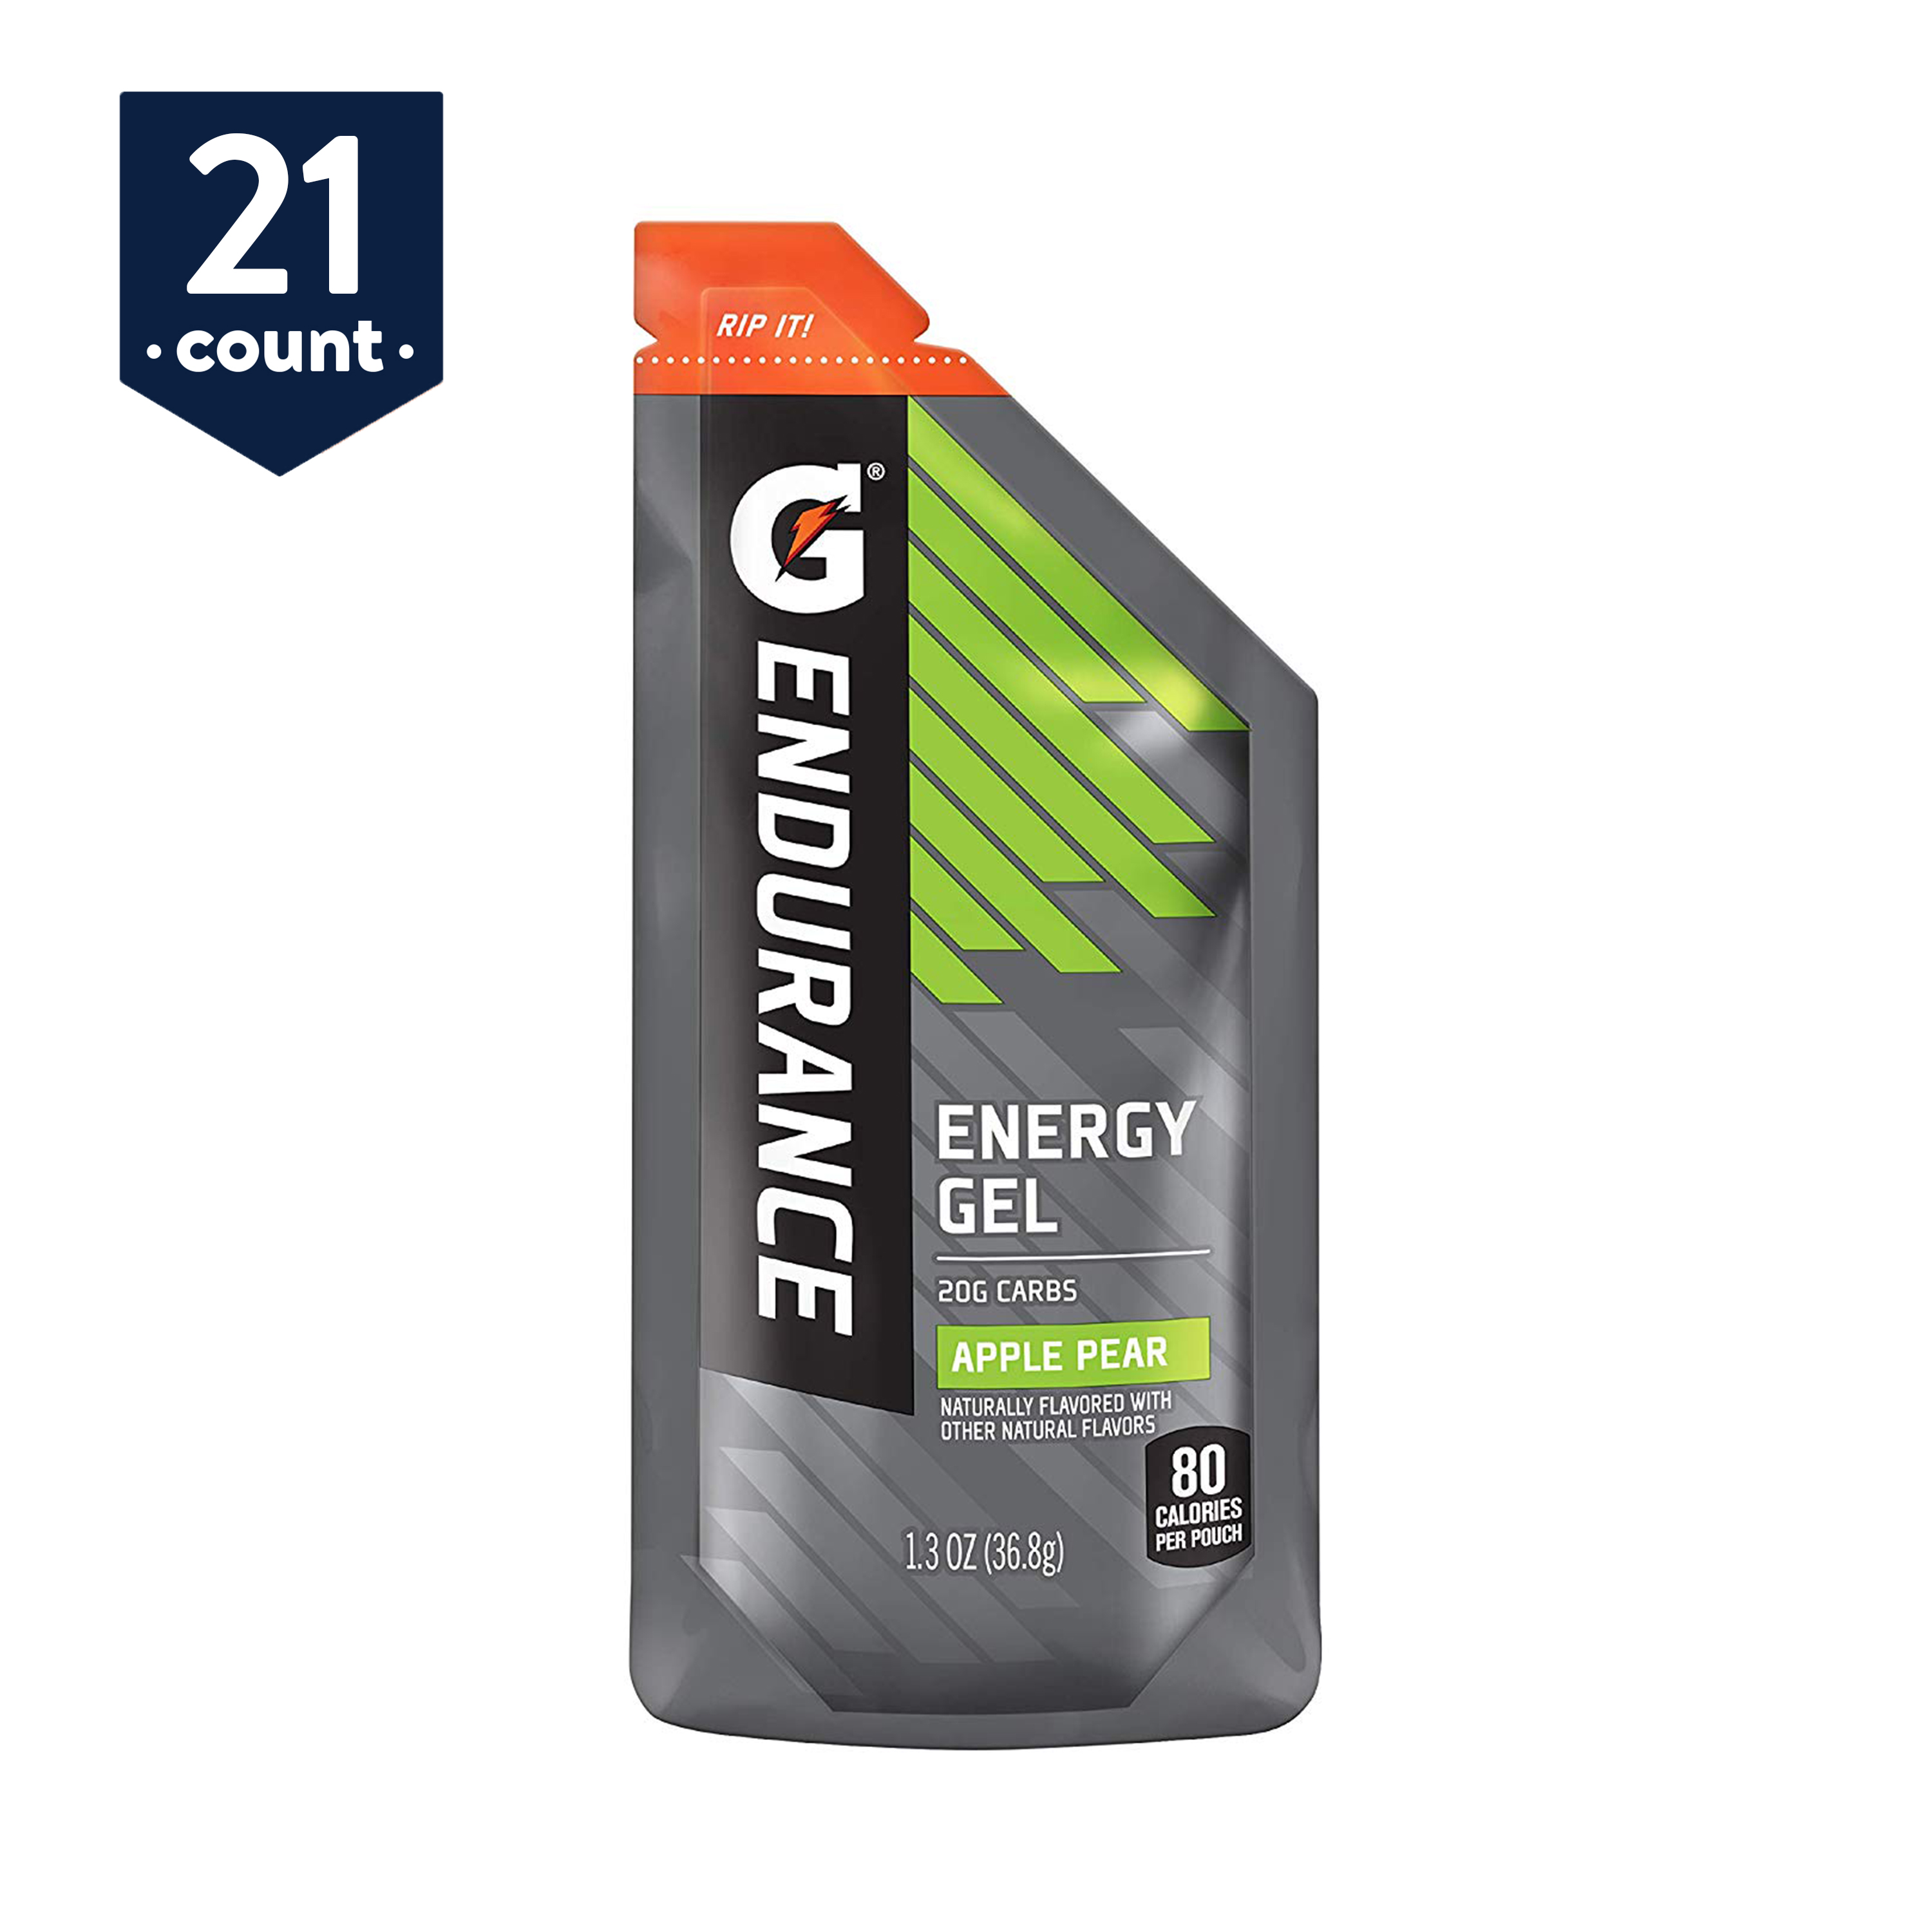 Gatorade Endurance Energy Gel, Apple Pear, 1.3 oz Pouches, 21 Count